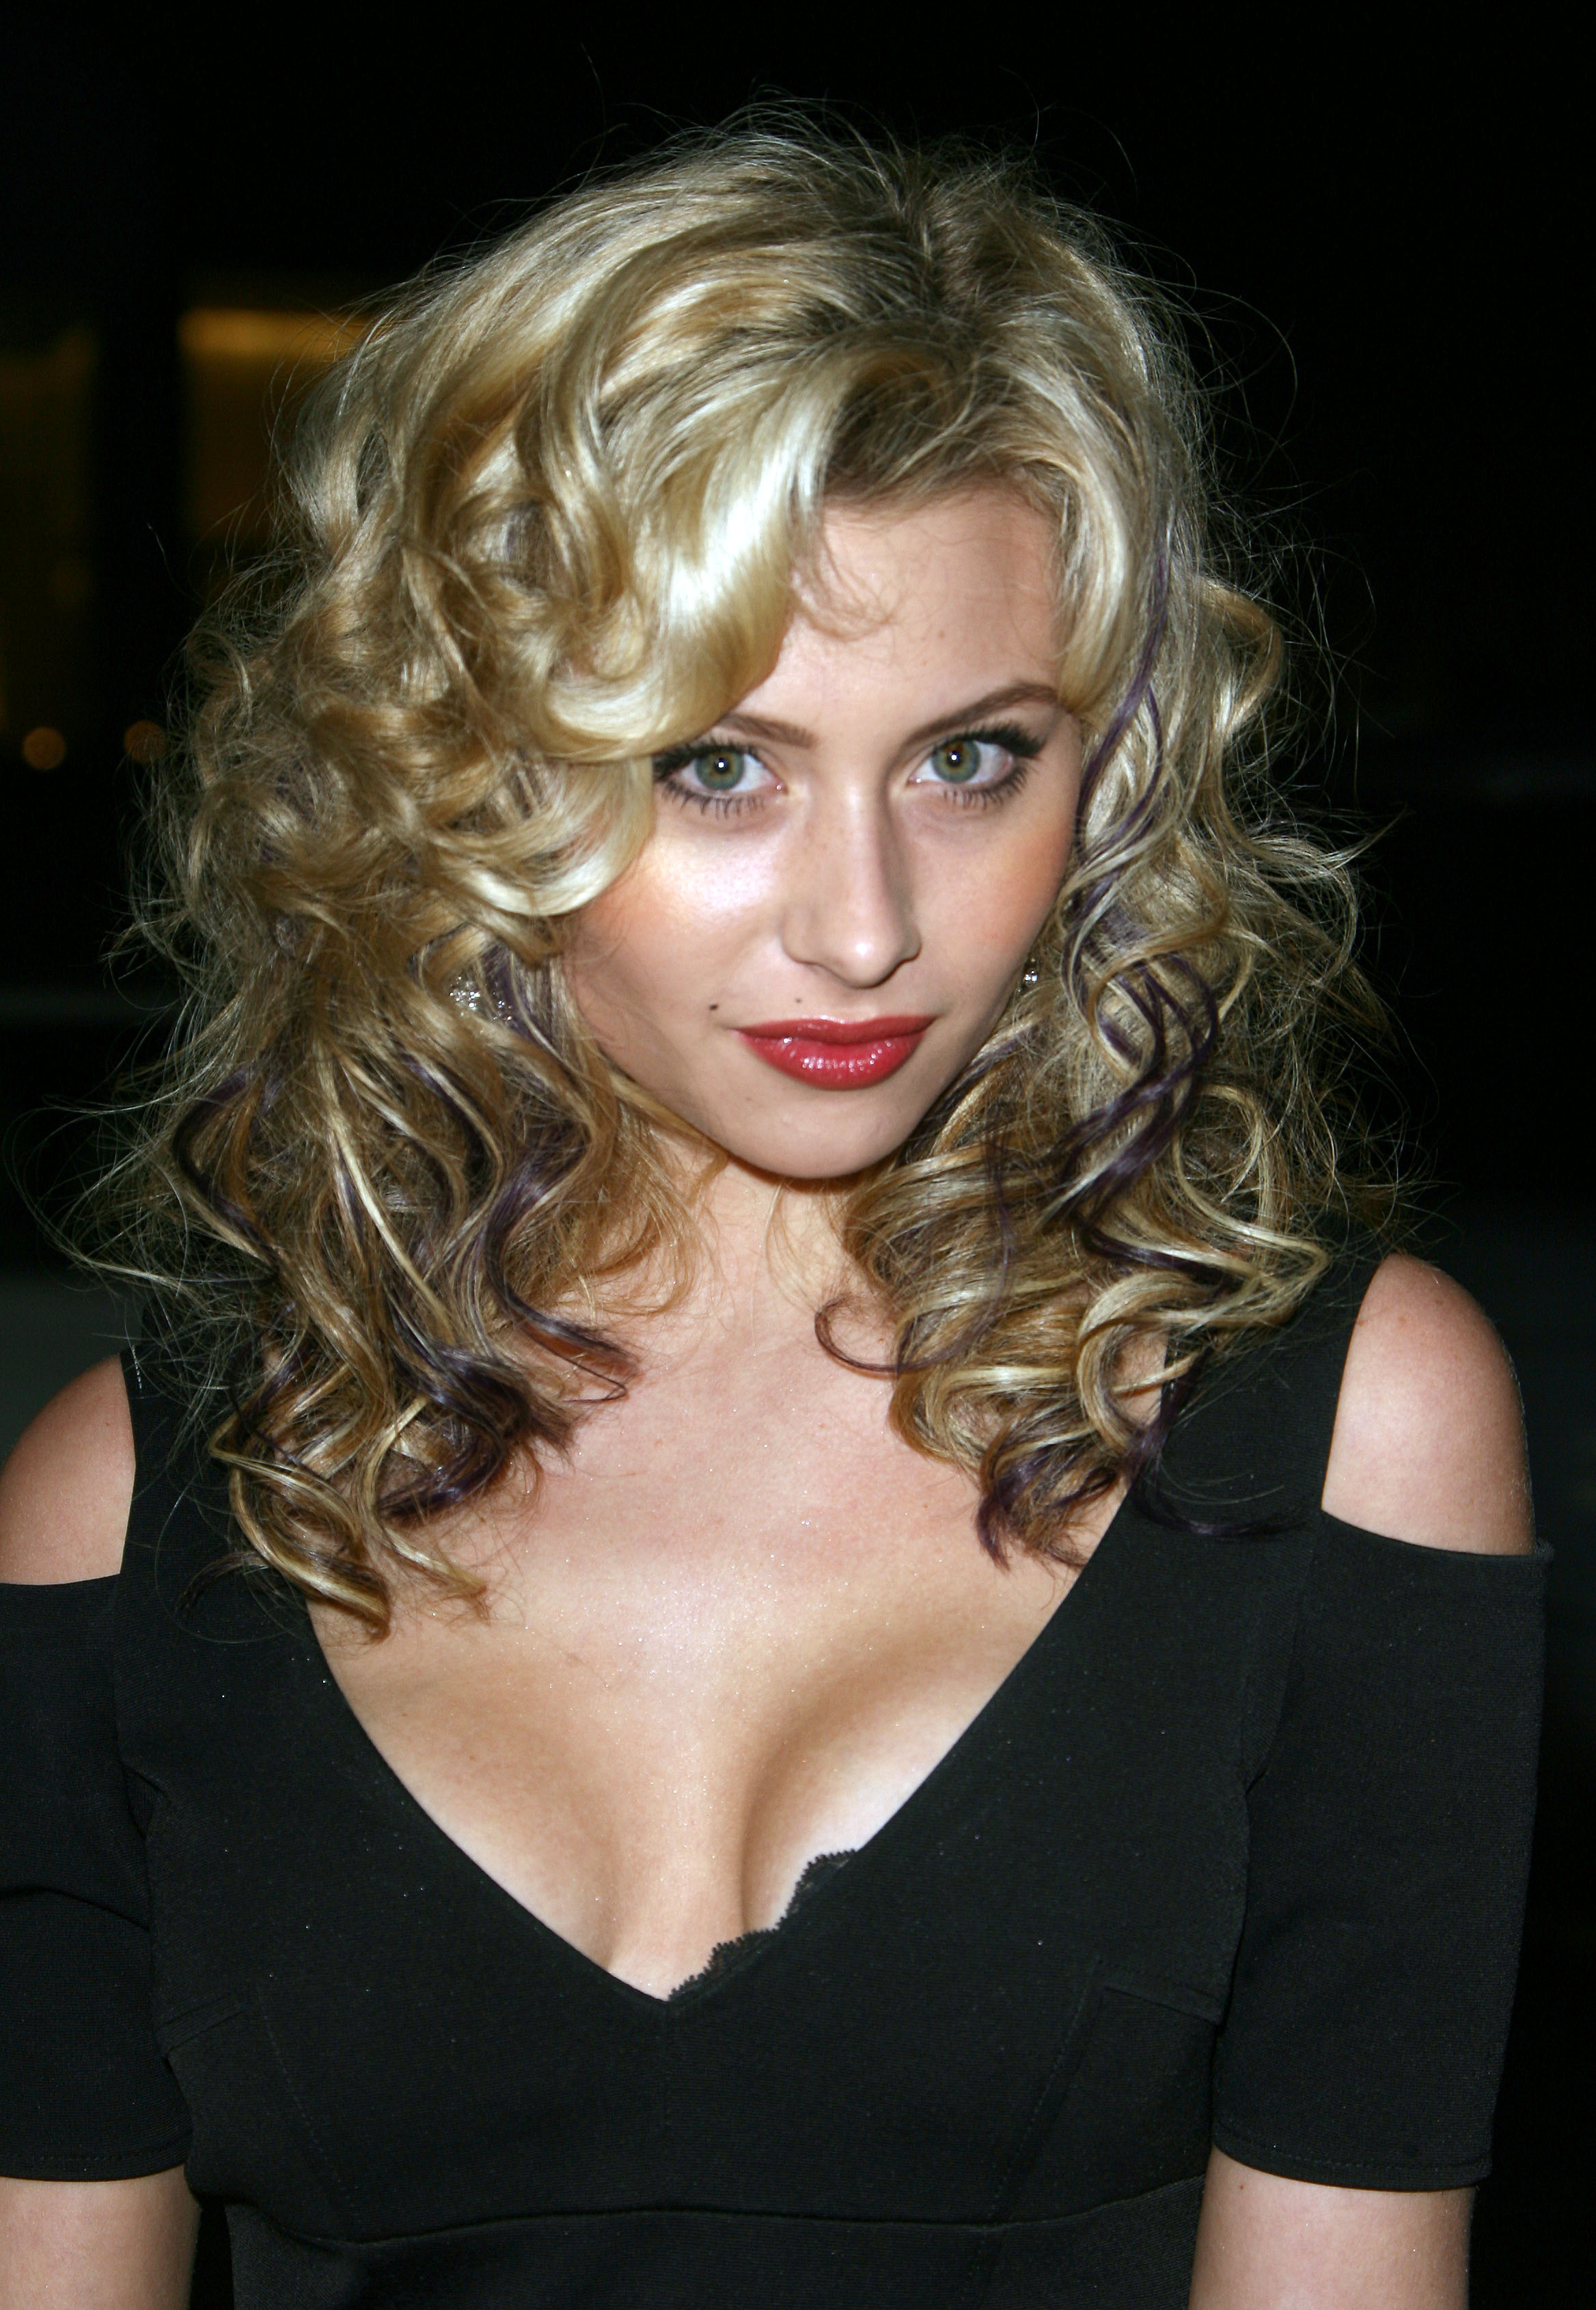 Does Aly Michalka Have a Boyfriend?